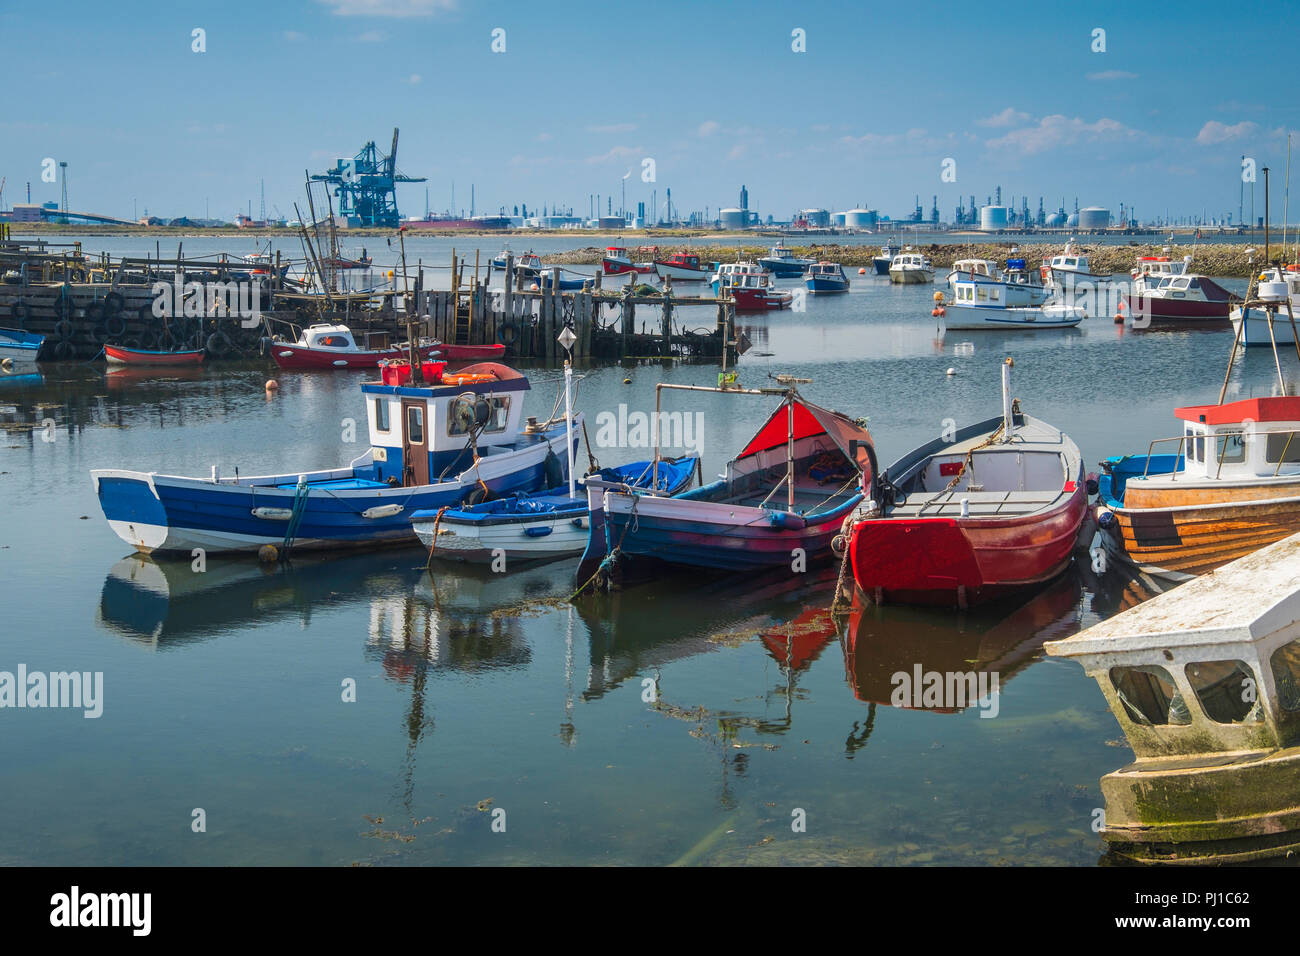 Small fishing boats in Paddys Hole on South Gare with the industrial north bank of the Tees behind. - Stock Image